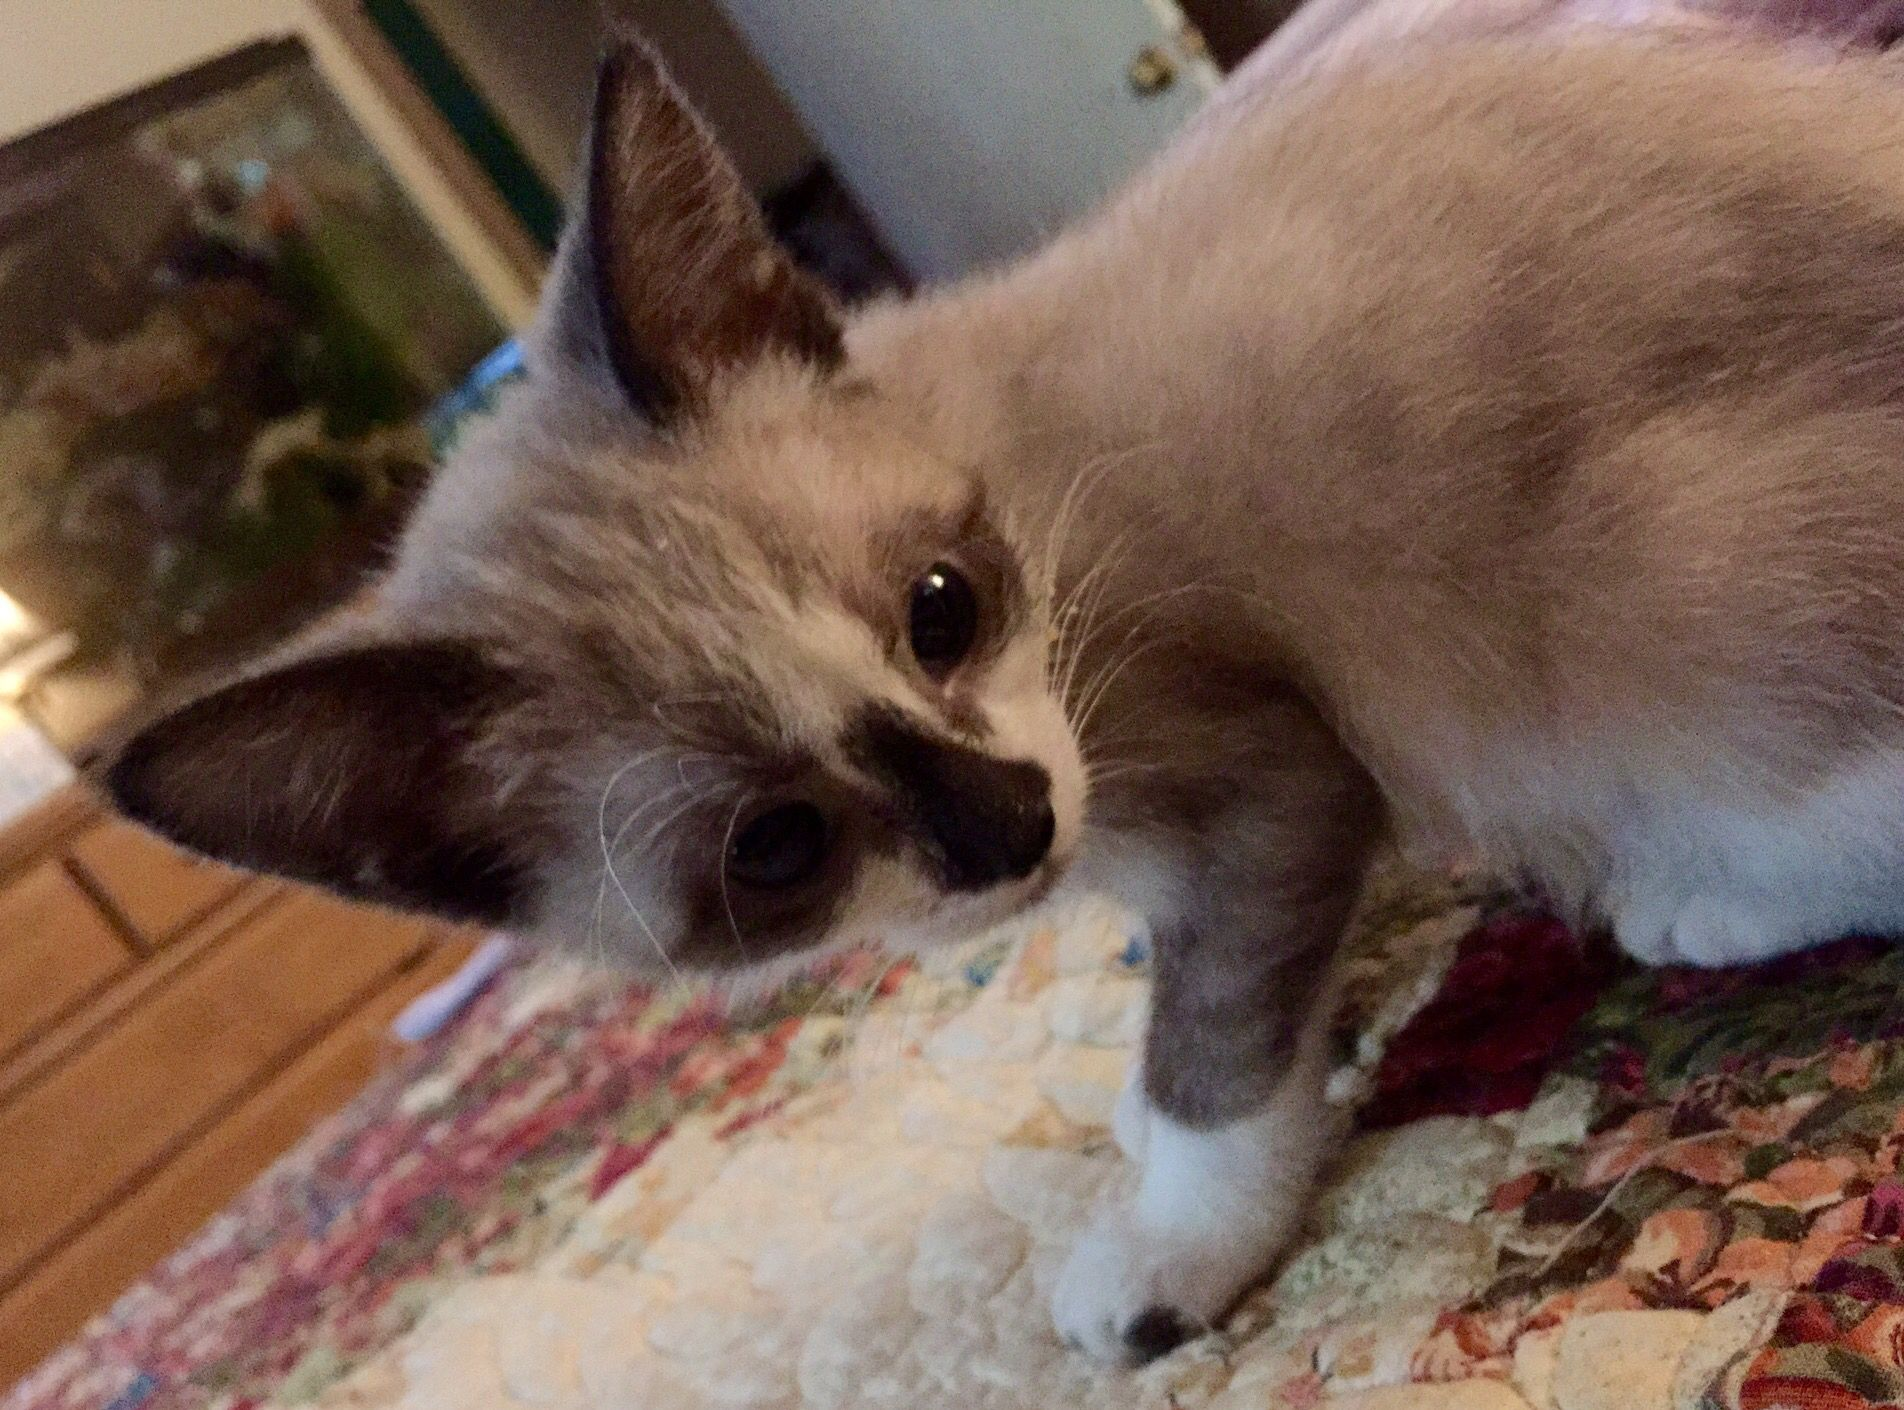 Zoe is now 3 months old and still only 1.8 lbs. She's the cutest little kitty. We're sure she is a Siamese mix...some Snowshoe markings? Anyway, she is beautiful, and as soon as she weighs enough and can be spayed, we will be able to adopt her. She is my little doll!